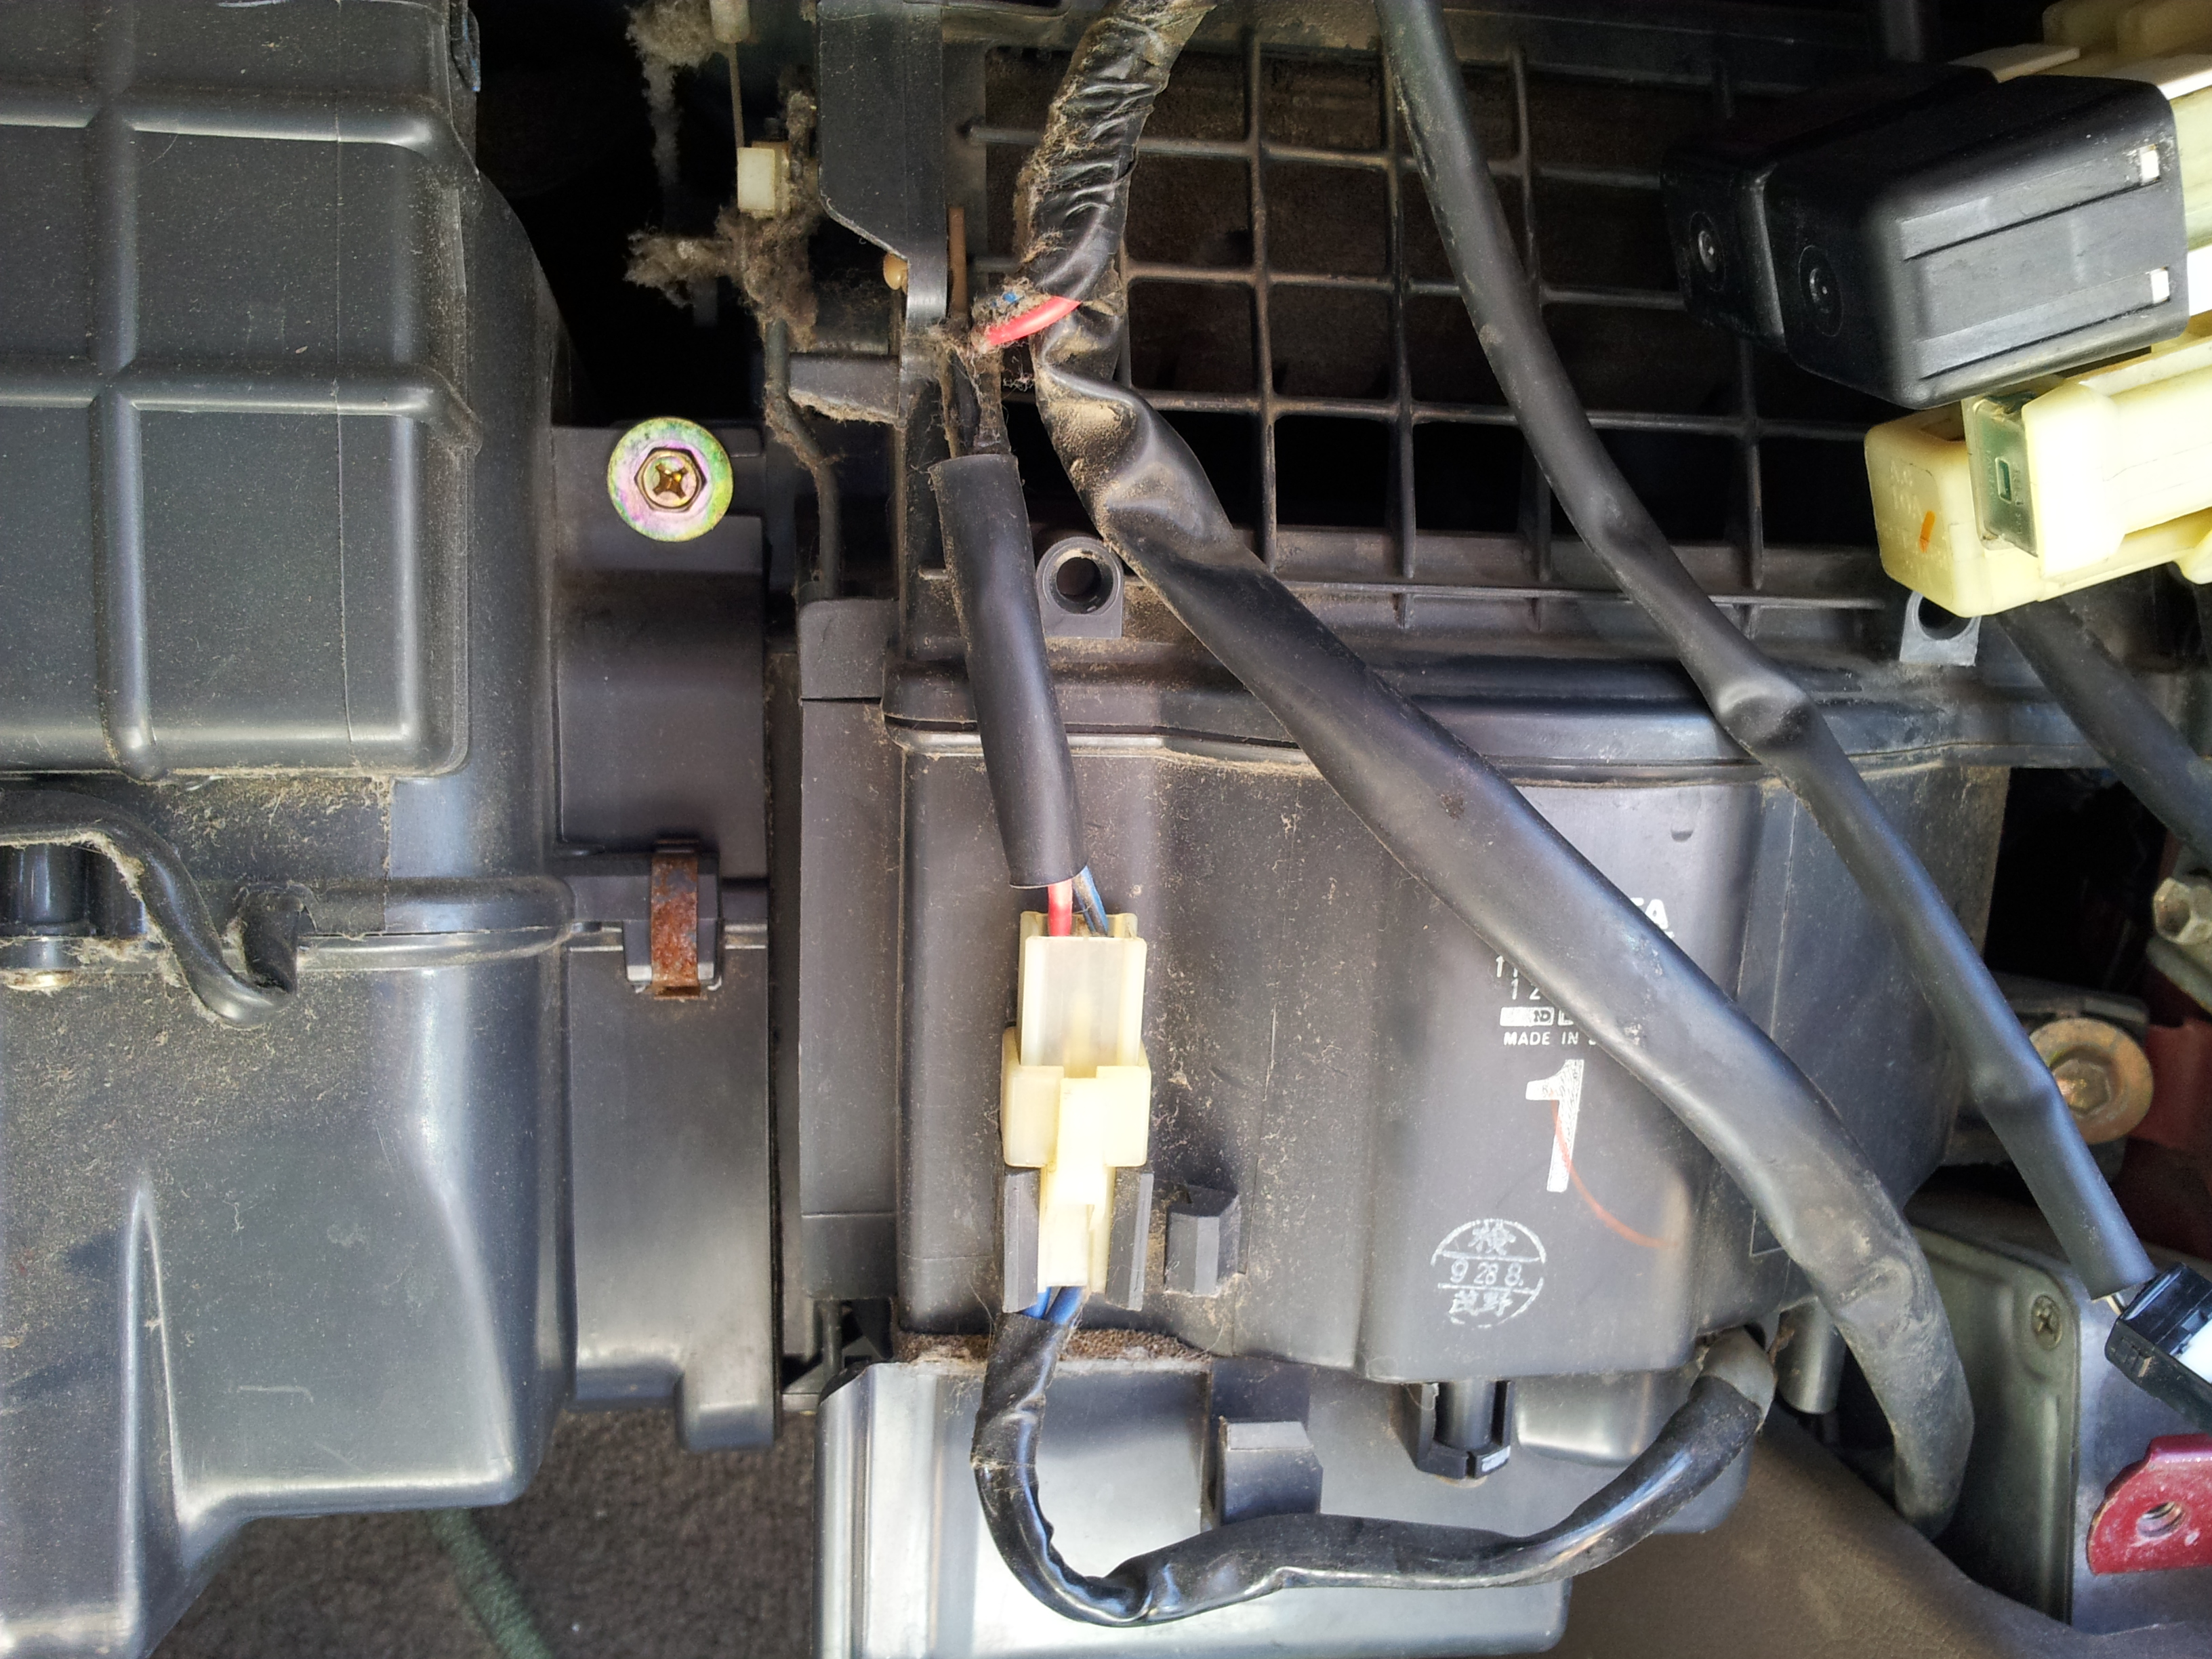 1995 Toyota 4 Heat And Ac Not Working It Just Quit All At Once No Heater Blower Motor Wiring Diagram Multi Meeter Reads 04 Set On 20 Dcv Graphic Mechanic Skyvisions